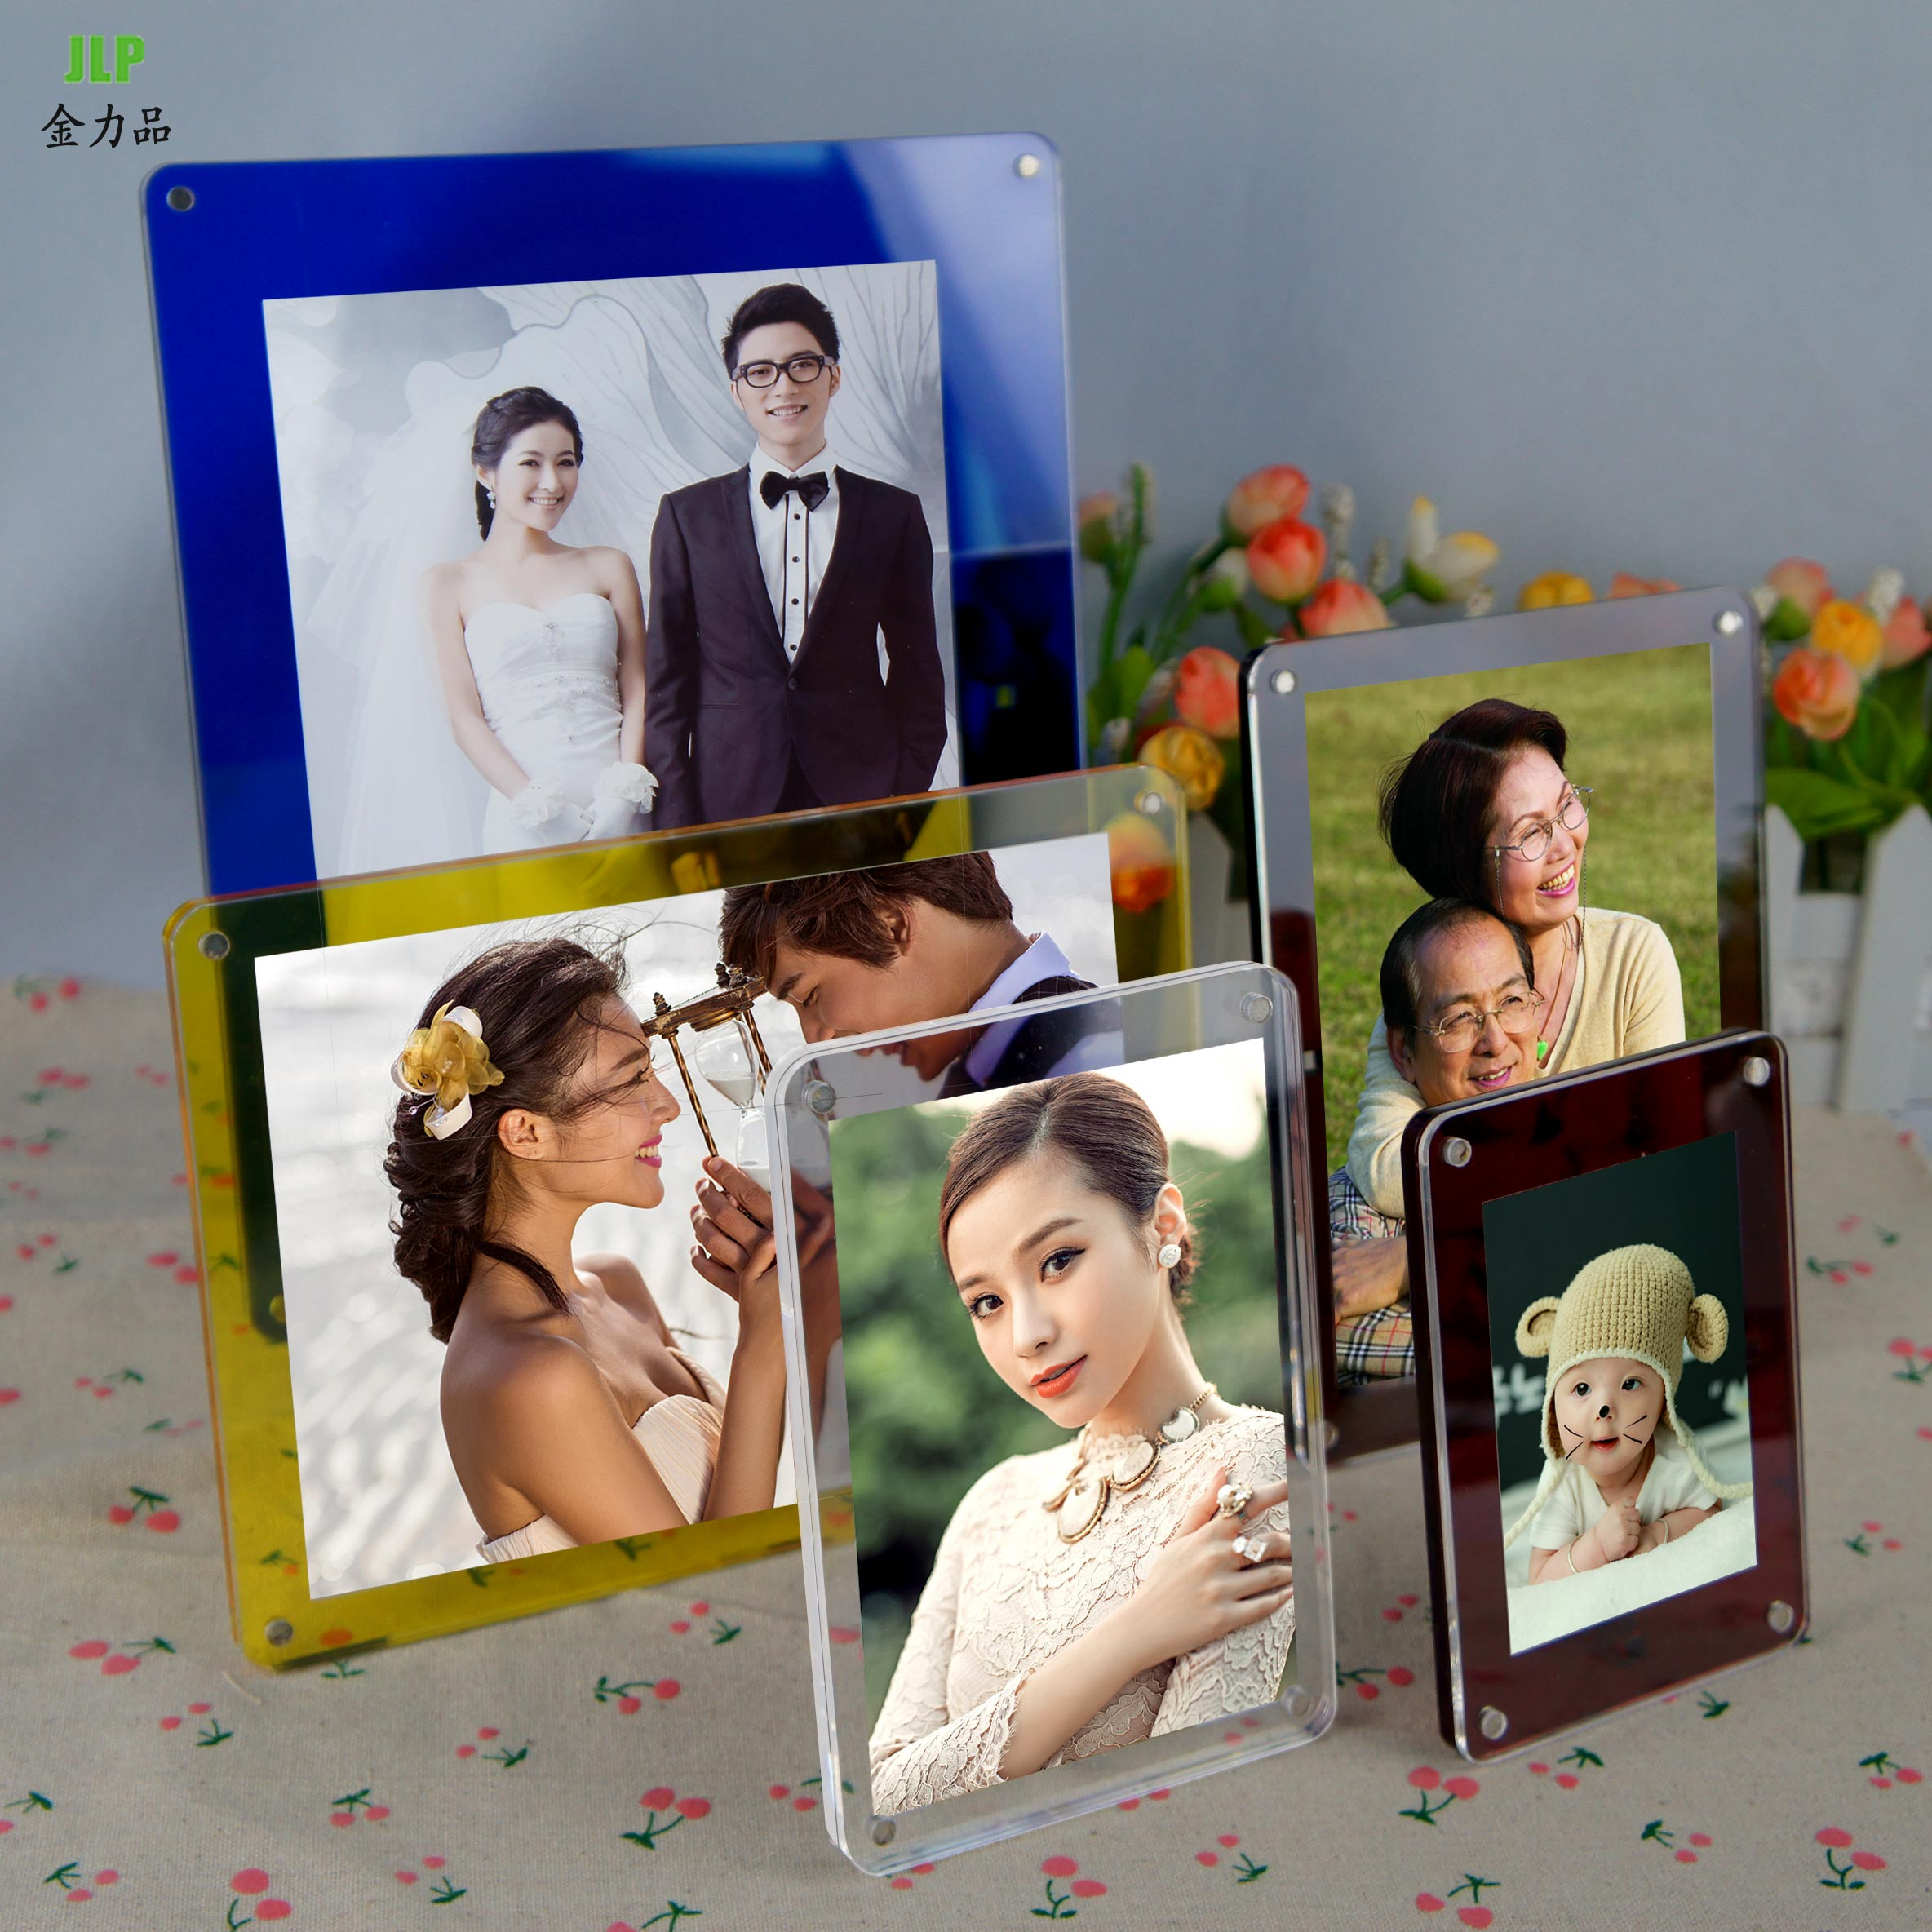 Acrylic photo frame swing sets 5 inch 6 inch 7 inch 8 inch 10 inch frame creative crystal photo frame home studio